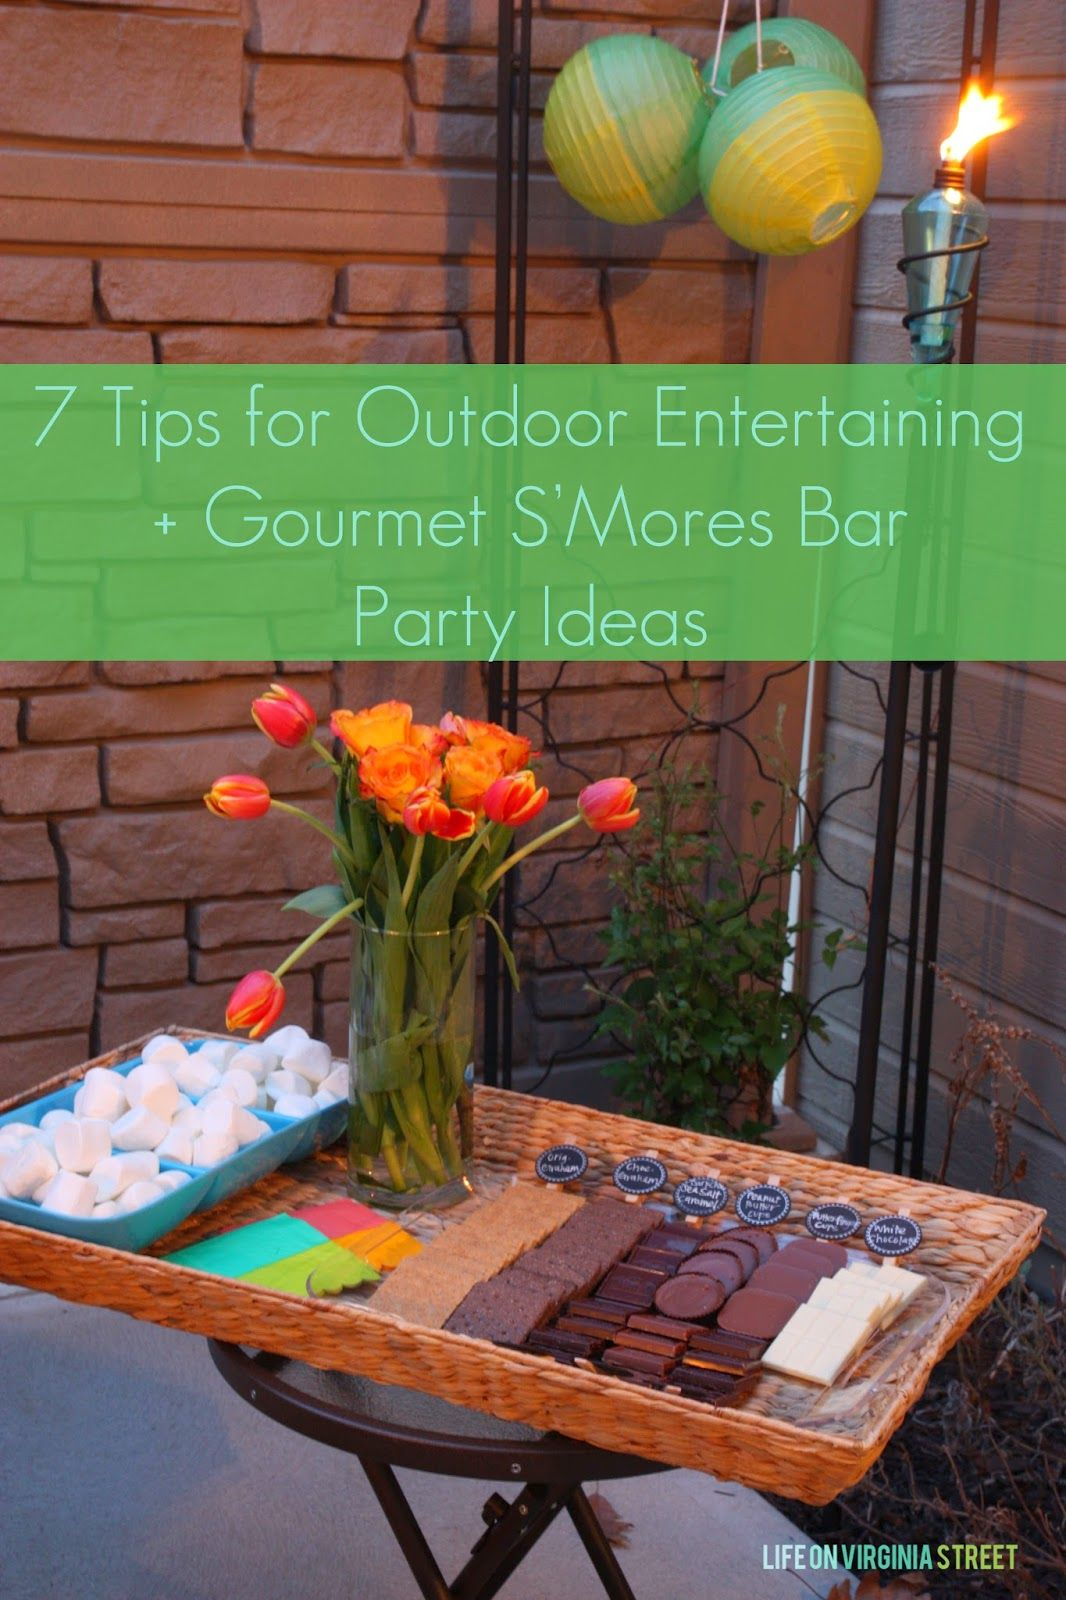 Great Party Idea Gourmet S Mores Bar Outdoor And Tiki Torches Outdooertaining Ad